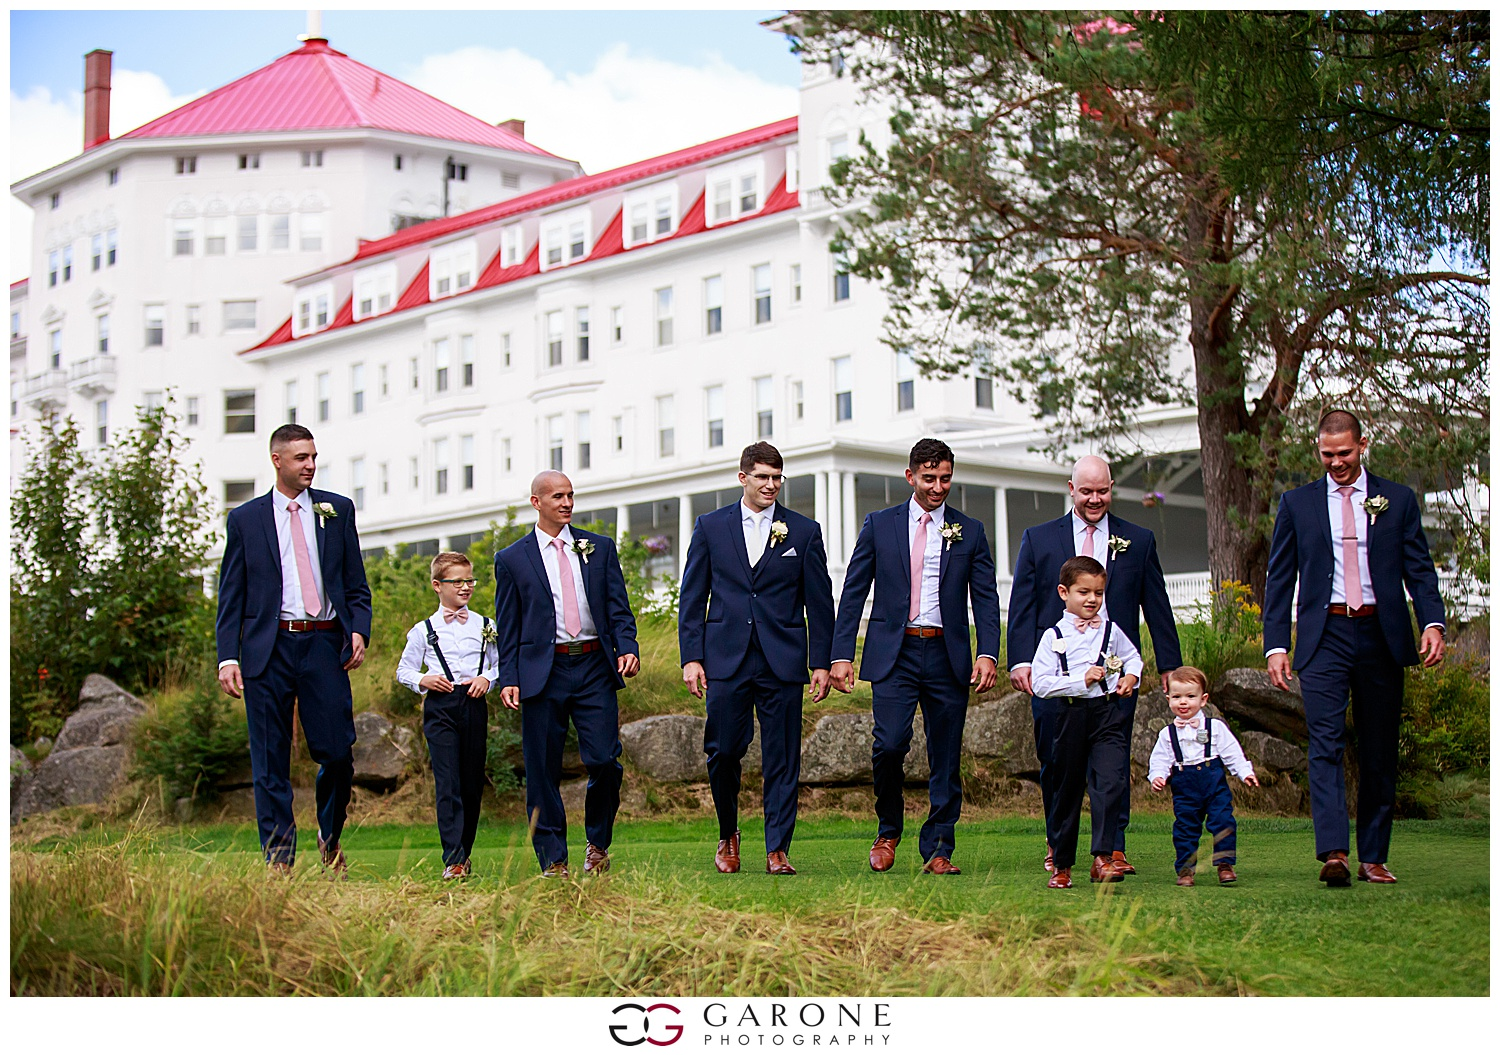 Omni_Mount_Washington_hotel_Wedding_White_Mountain_Wedding_Garone_Photography_0015.jpg